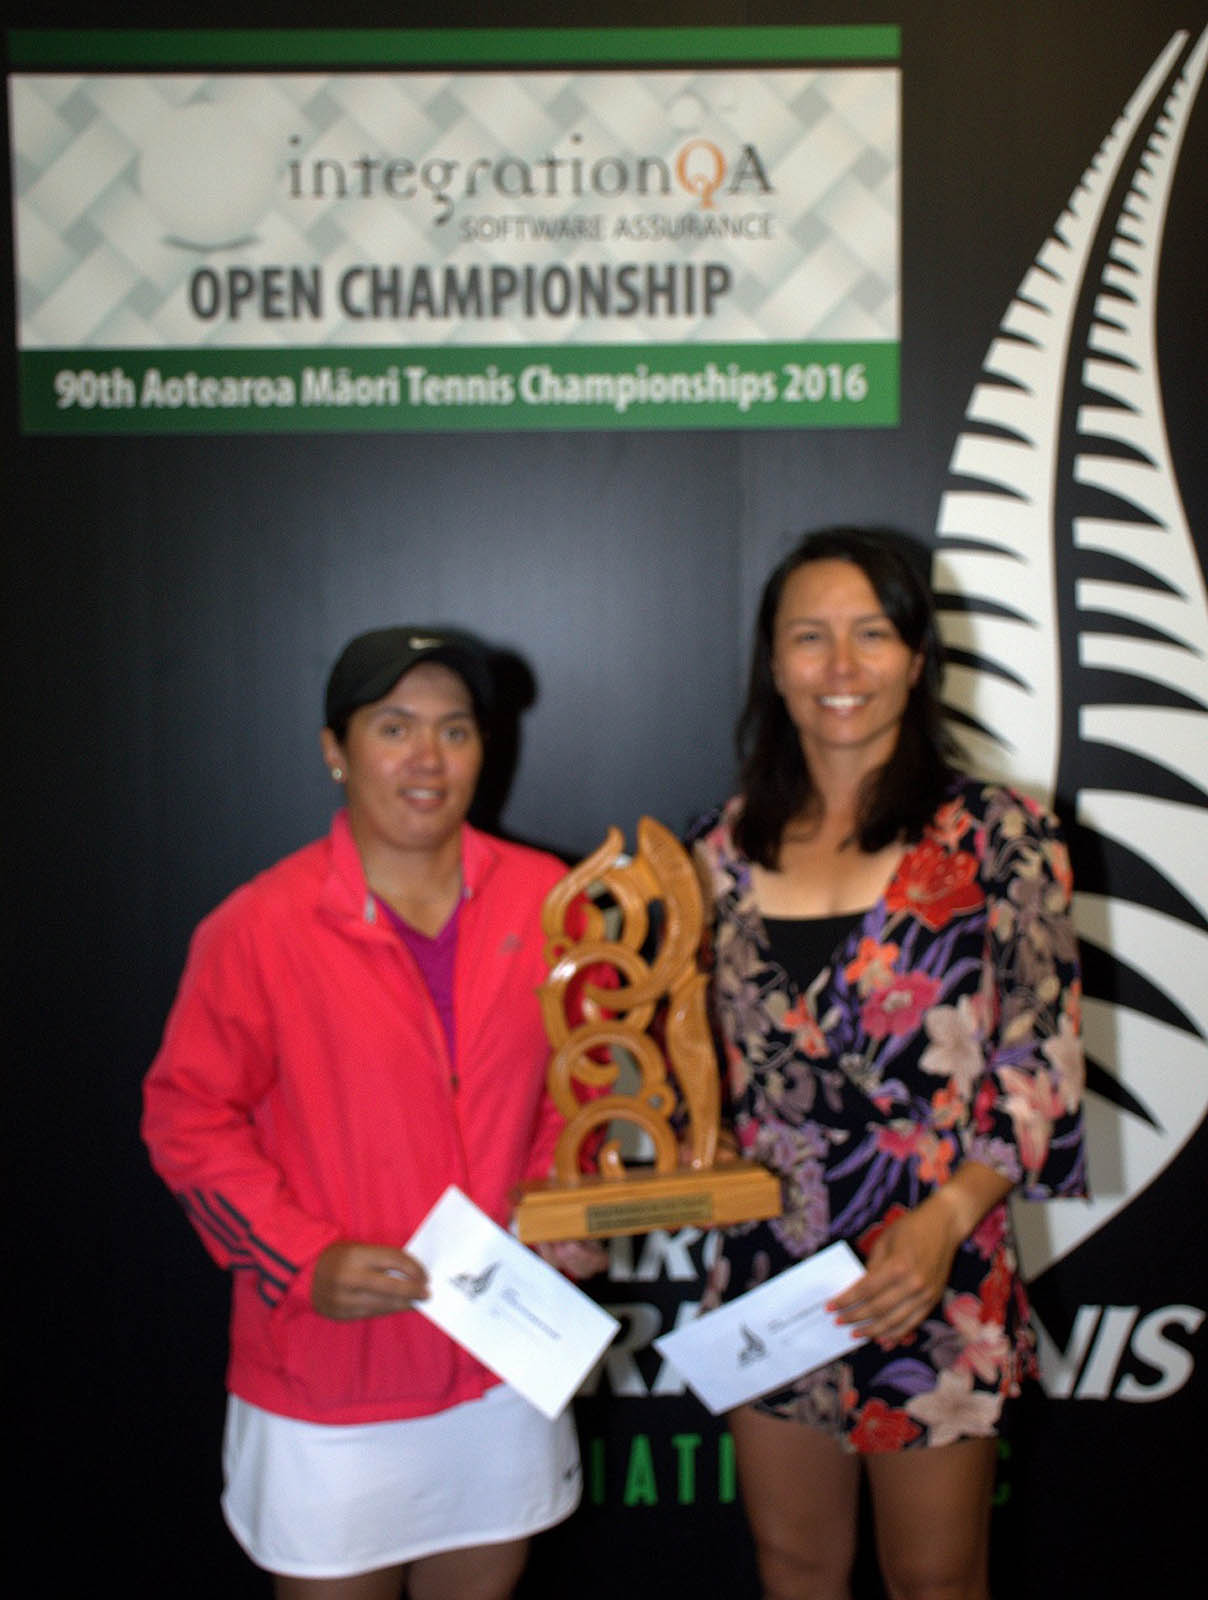 Open Womens Doubles Winners: Luci Barlow and Tracey O'Connor